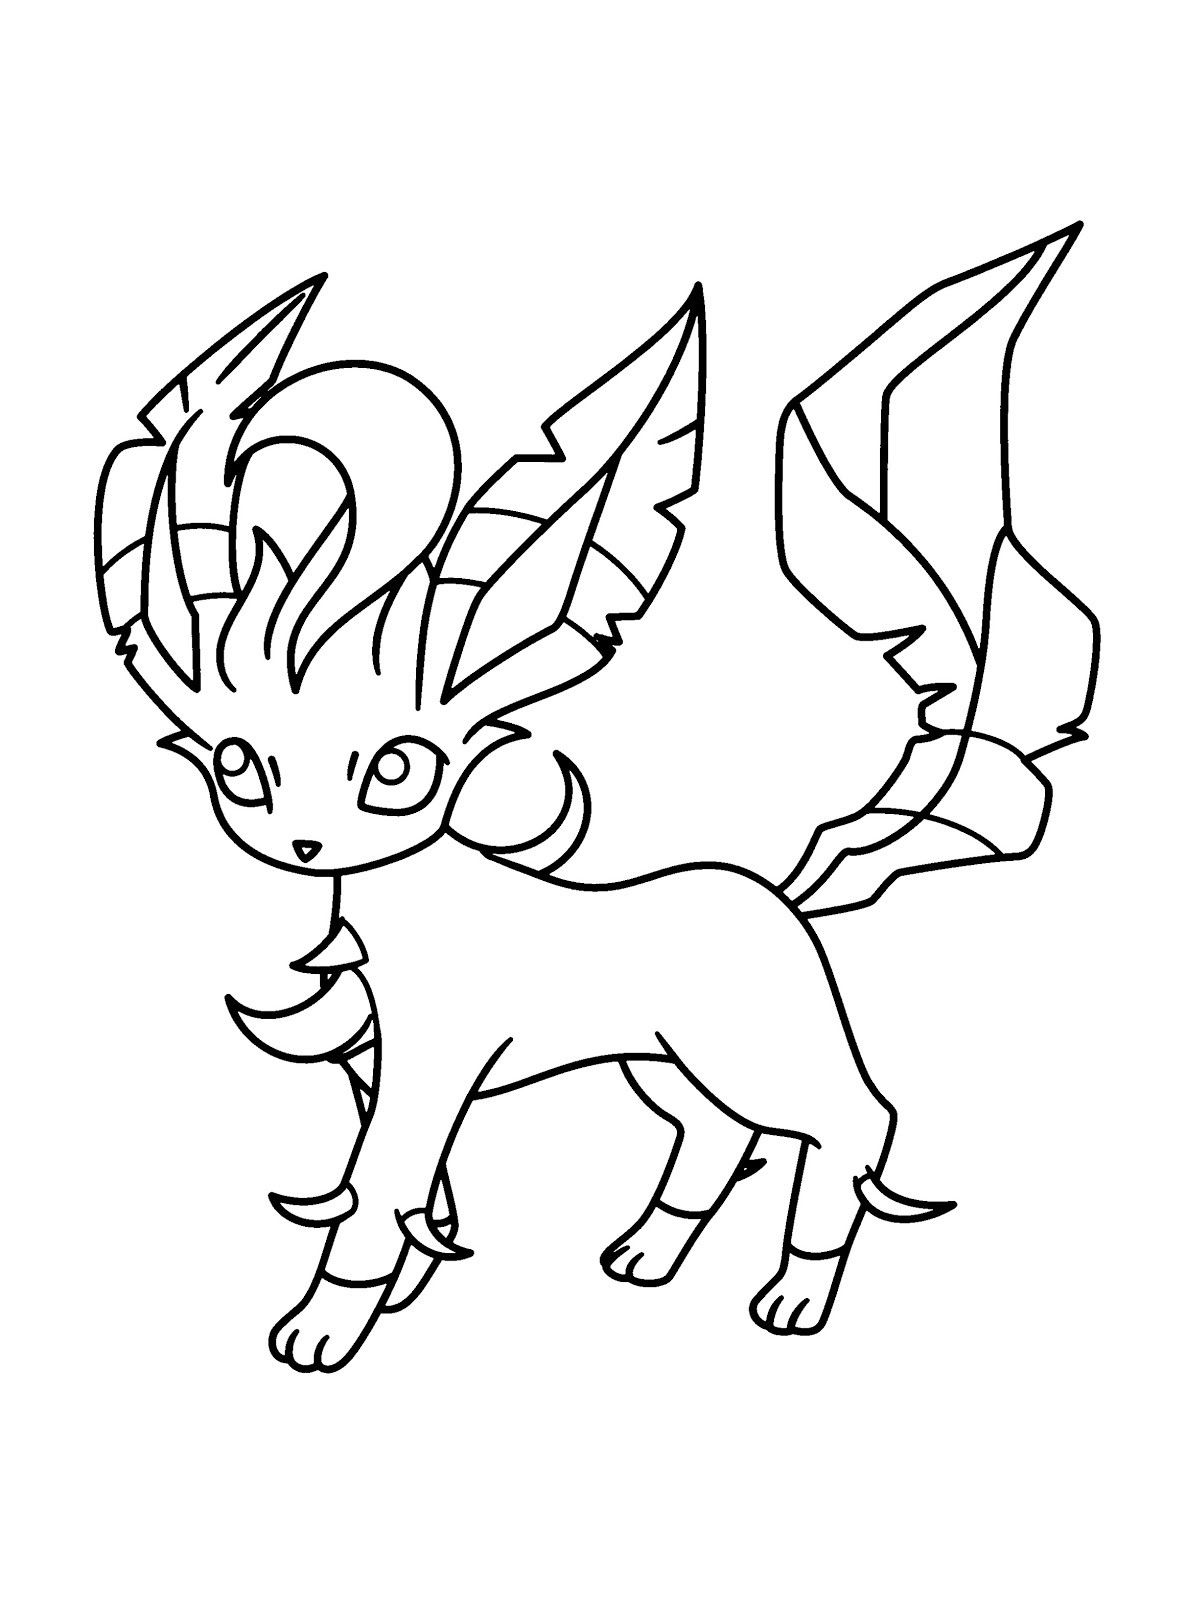 Pokemon Eevee Coloring Page Youngandtae Com In 2020 Pokemon Coloring Sheets Pokemon Coloring Pokemon Coloring Pages